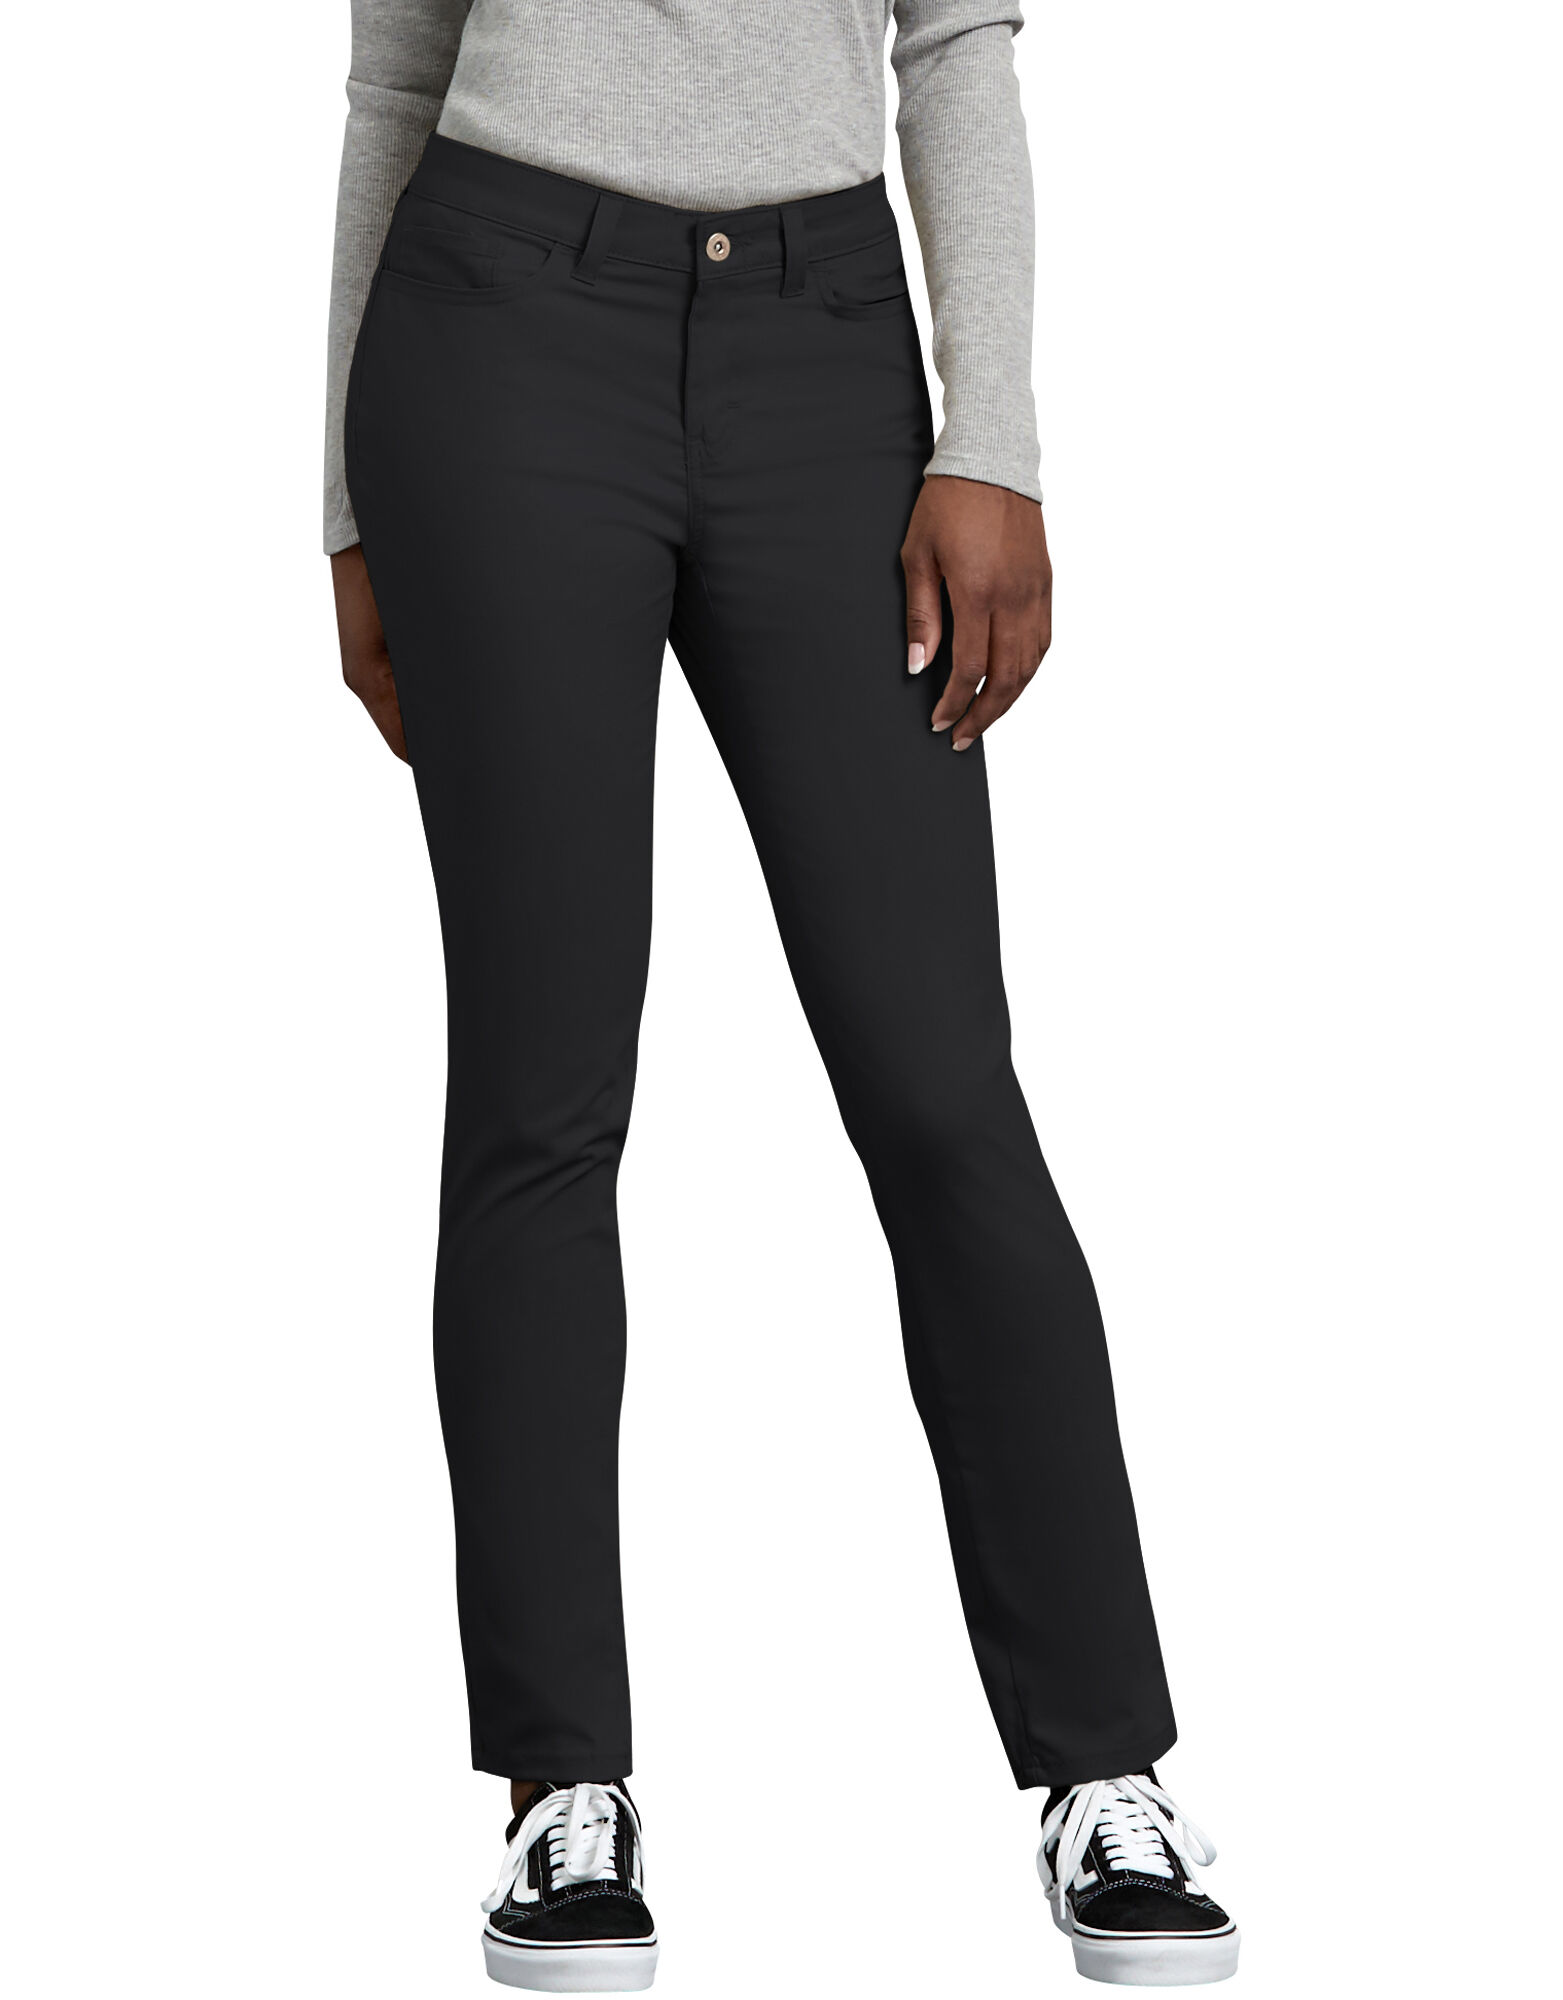 Dickies Occupational FP Women's Stretch Twill Pant (Relaxed Fit, Straight Leg: Plus Size) Sold by Bidlessnow. $ $ - $ At School by French Toast French Toast Big Girls' Plus Twill Straight Leg Pants (Sizes - ) Sold by CookiesKids. $